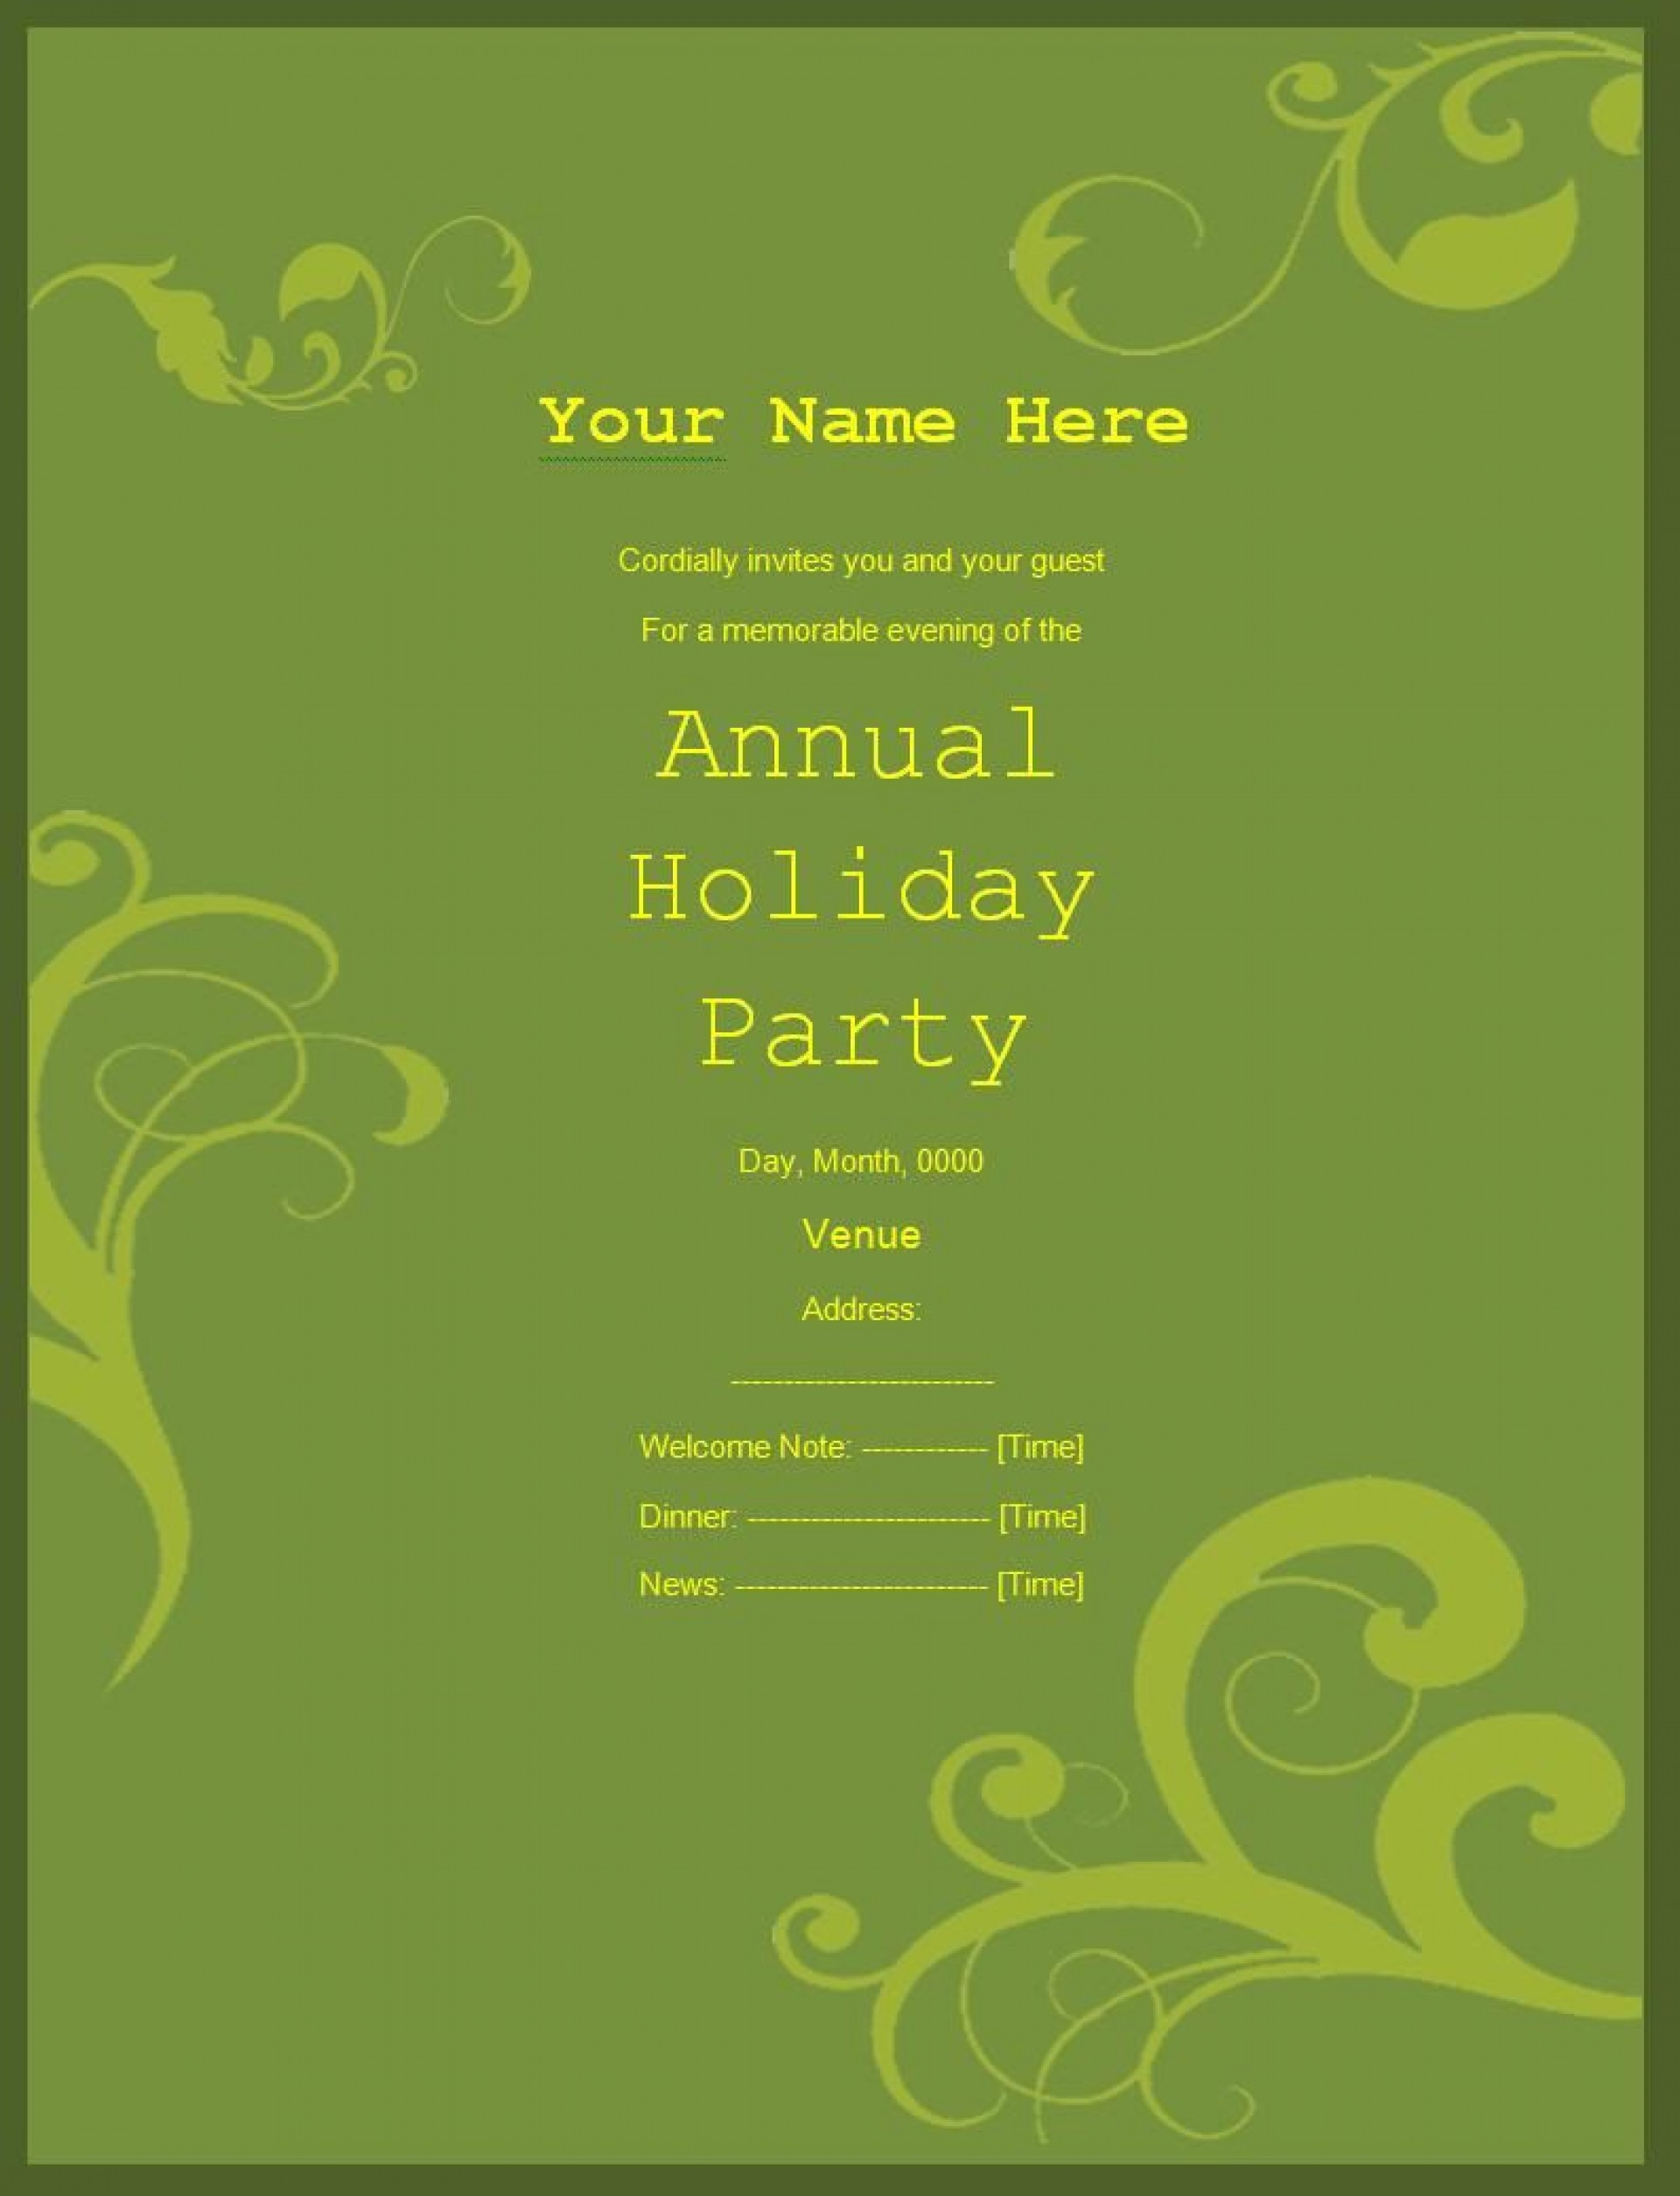 009 Shocking Retirement Party Invite Template Word Free Example 1920